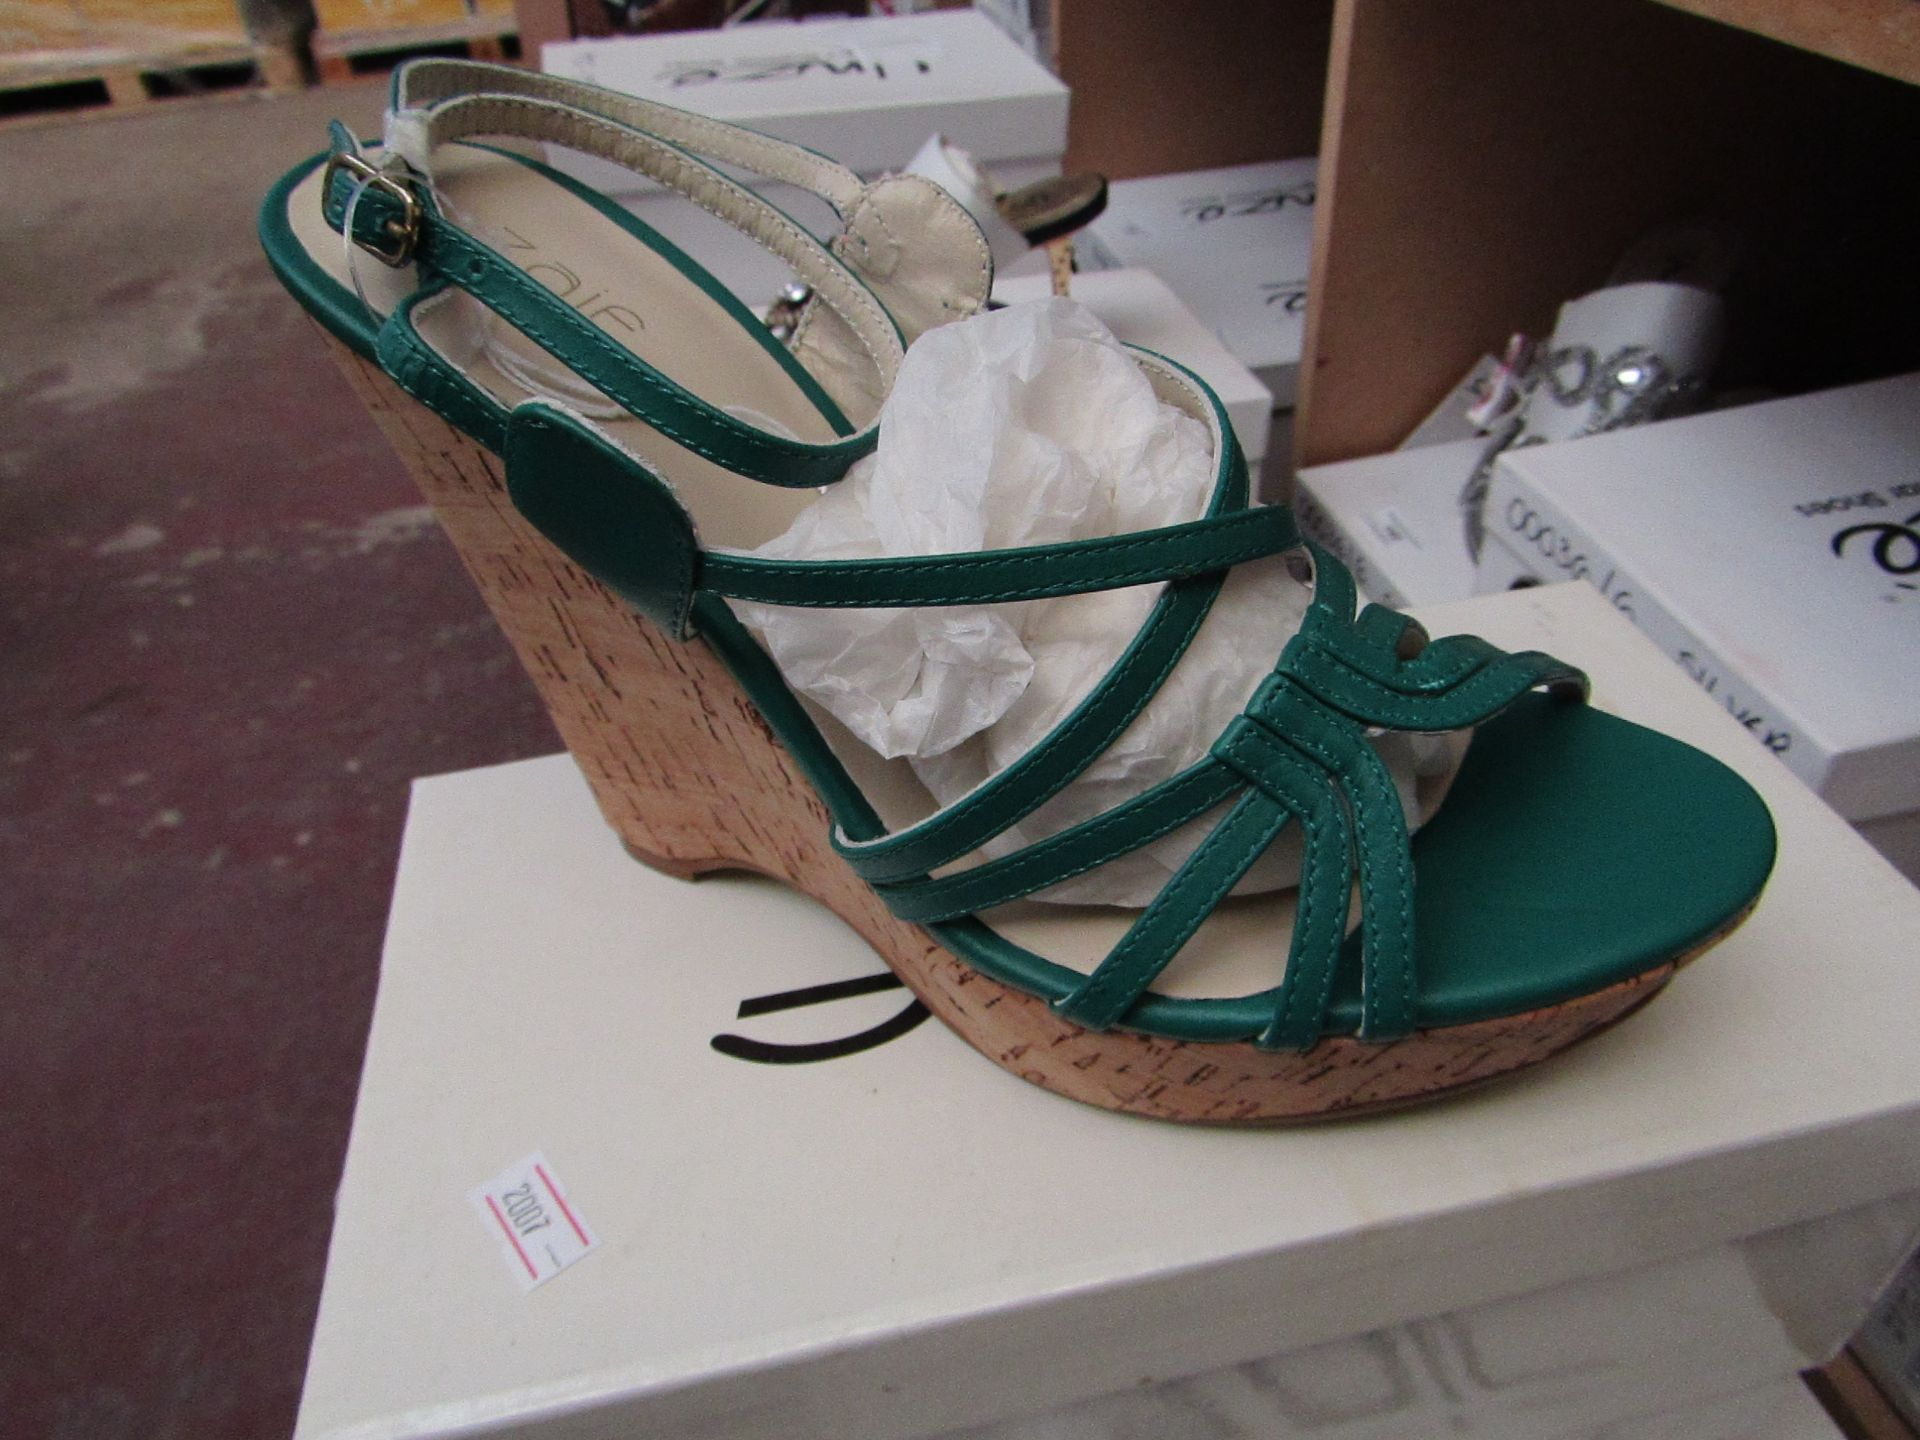 Zaif by Shalamar Shoes Ladies Green Wedge Shoes size 7 new & boxed see image for design